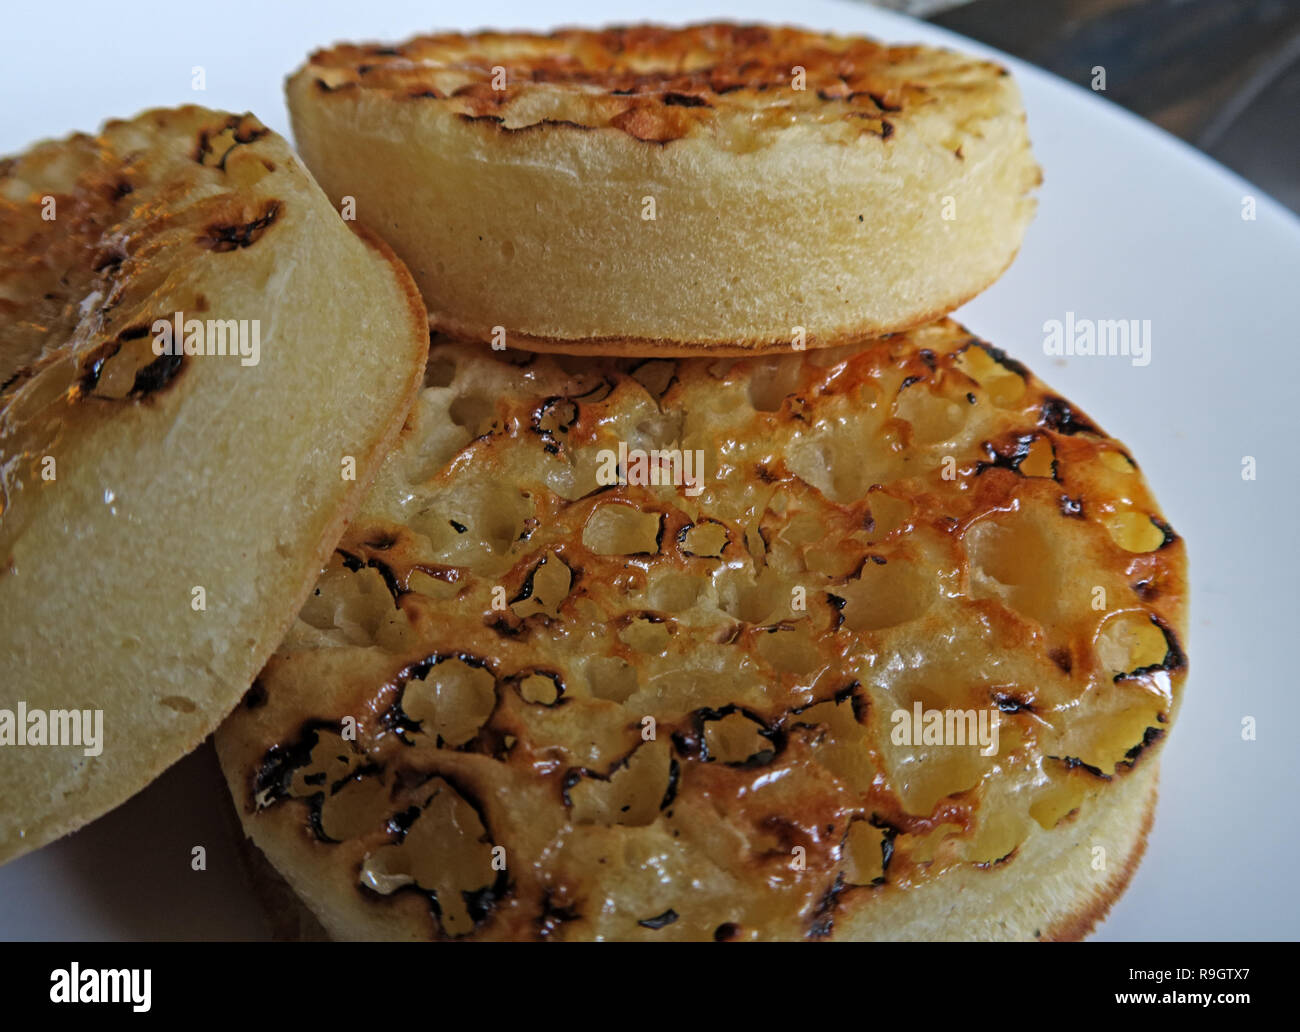 Three toasted buttered English Crumpets on a white plate - Stock Image